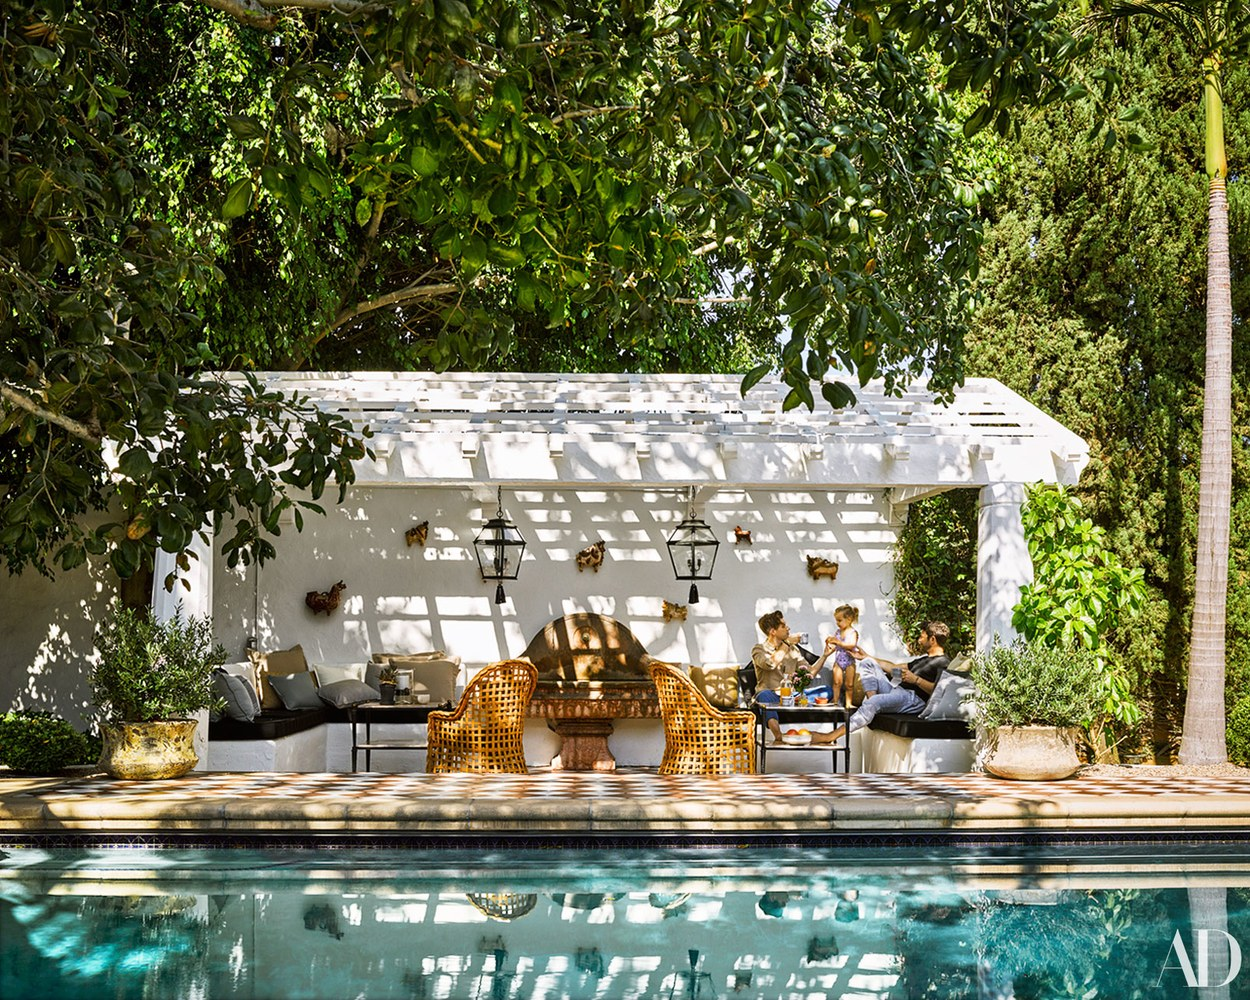 Nate Berkus' Granada Tile covered deck in AD. Photo by Douglas Friedman